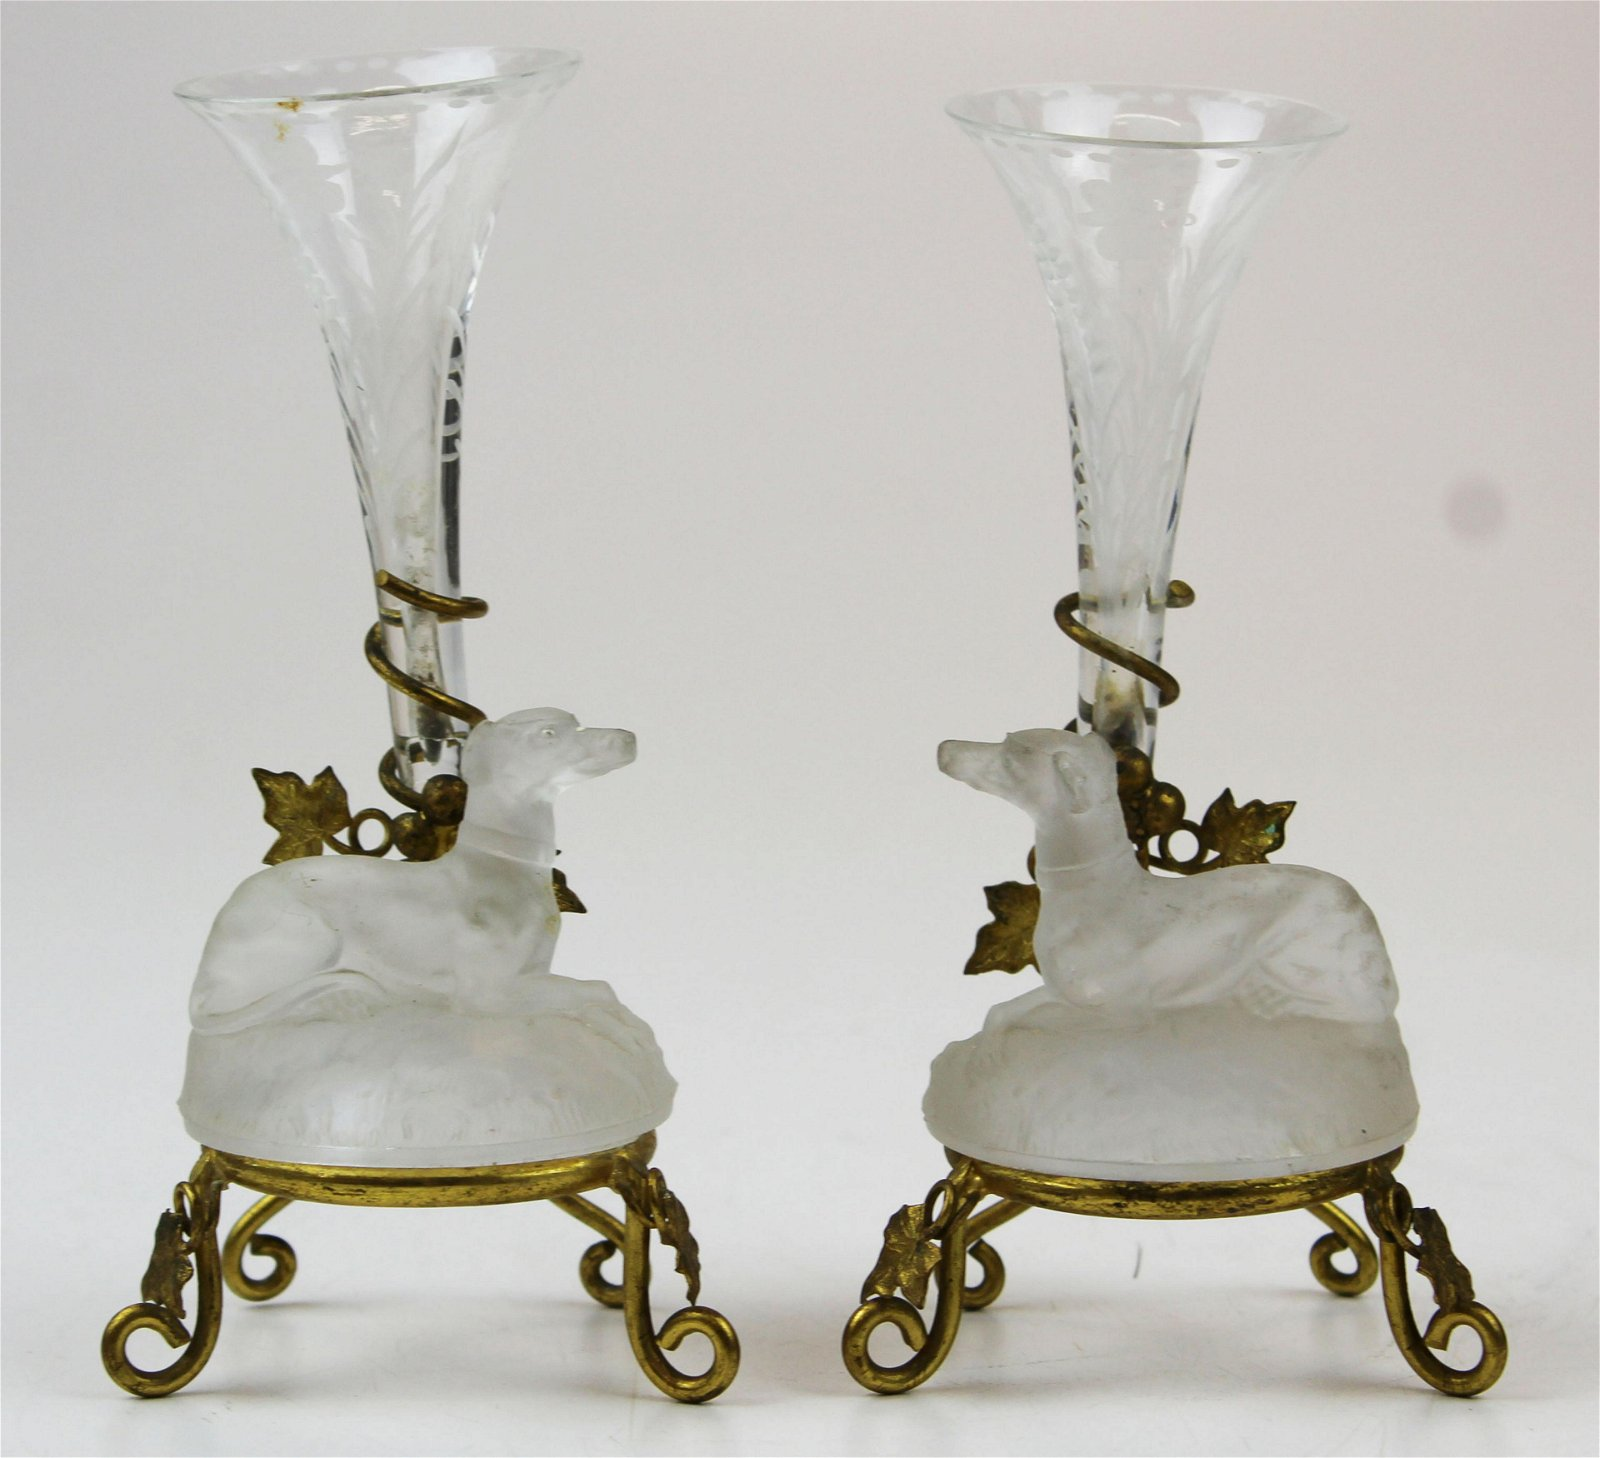 pair of Bohemian glass epergnes with dog figures